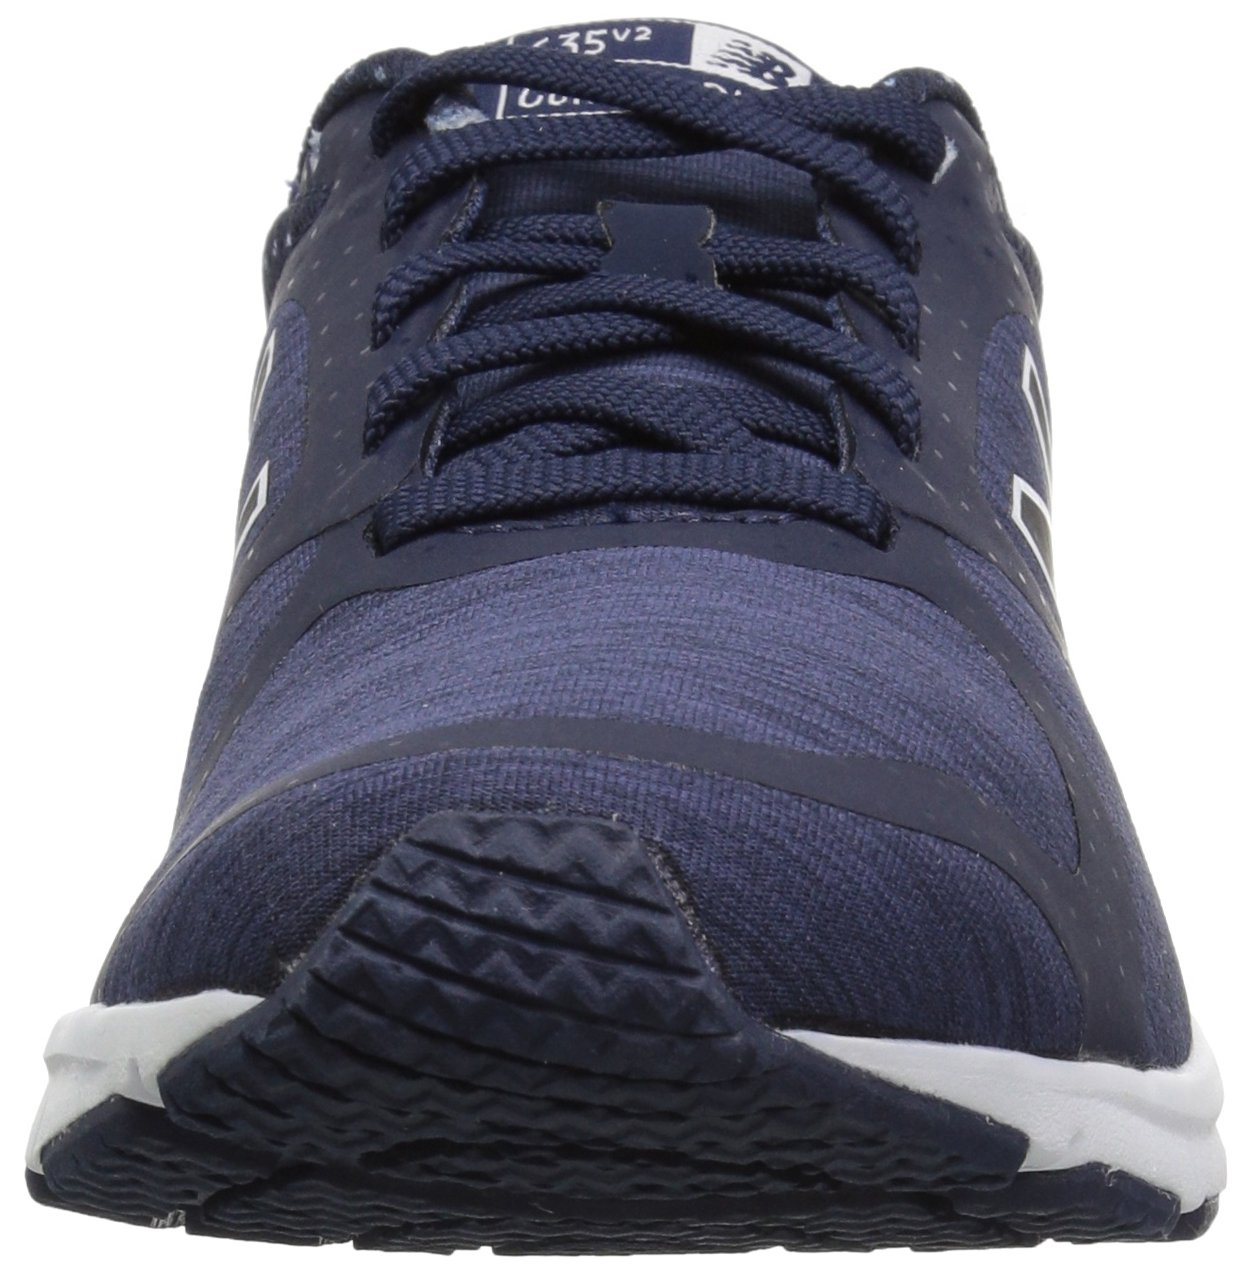 New Balance Women's 635v2 Cushioning Running Shoe B0751S7LTY 5 D US|Pigment